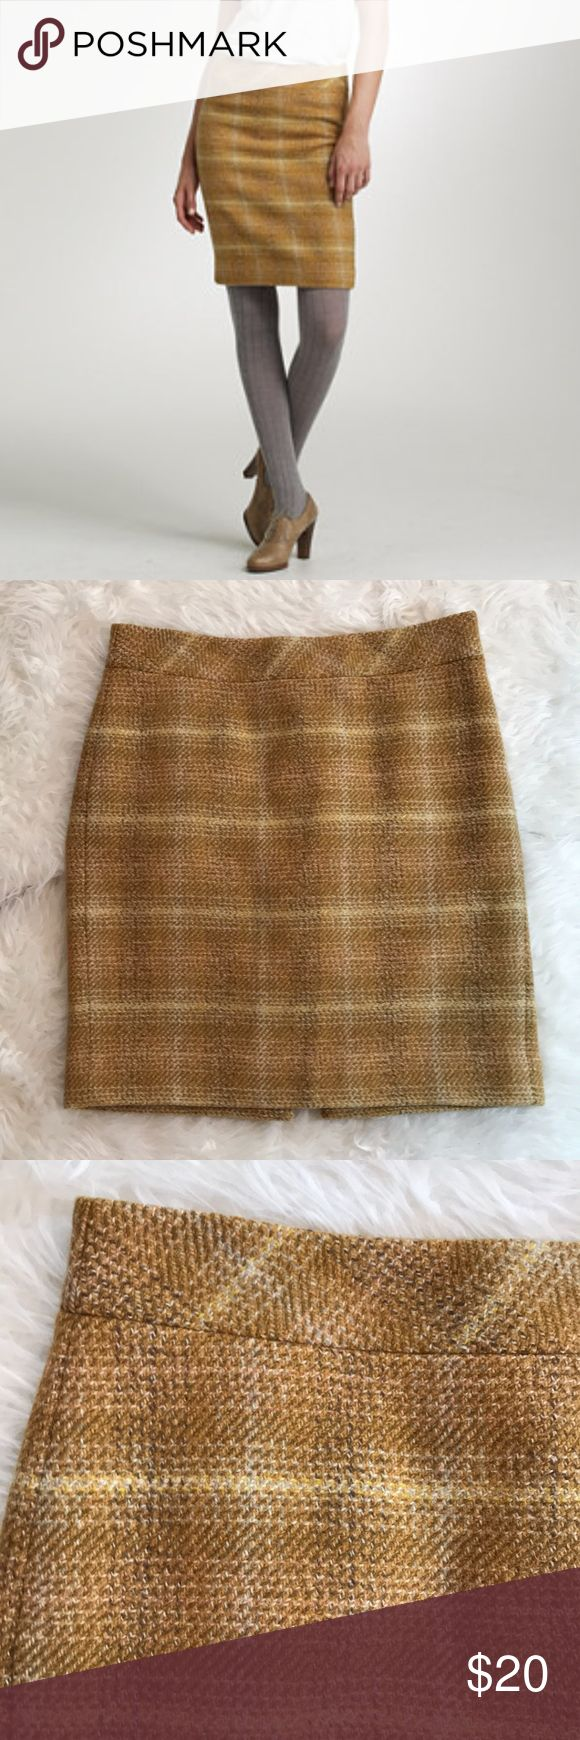 """J. Crew 'Sunnie' Golden Tweed Wool Pencil Skirt J. Crew 'Sunnie' pencil skirt in absolutely perfect condition.  The perfect cubicle-to-cocktails piece, this slimming pencil skirt is designed in an richly textured, mellow-yellow tweed.  Concealed back zipper.  Back vent.  Fully lined.  Length is about 21.5,"""" waist is approximately 34."""" 100% wool; lining is 100% polyester.  Size 12. J. Crew Skirts Pencil"""